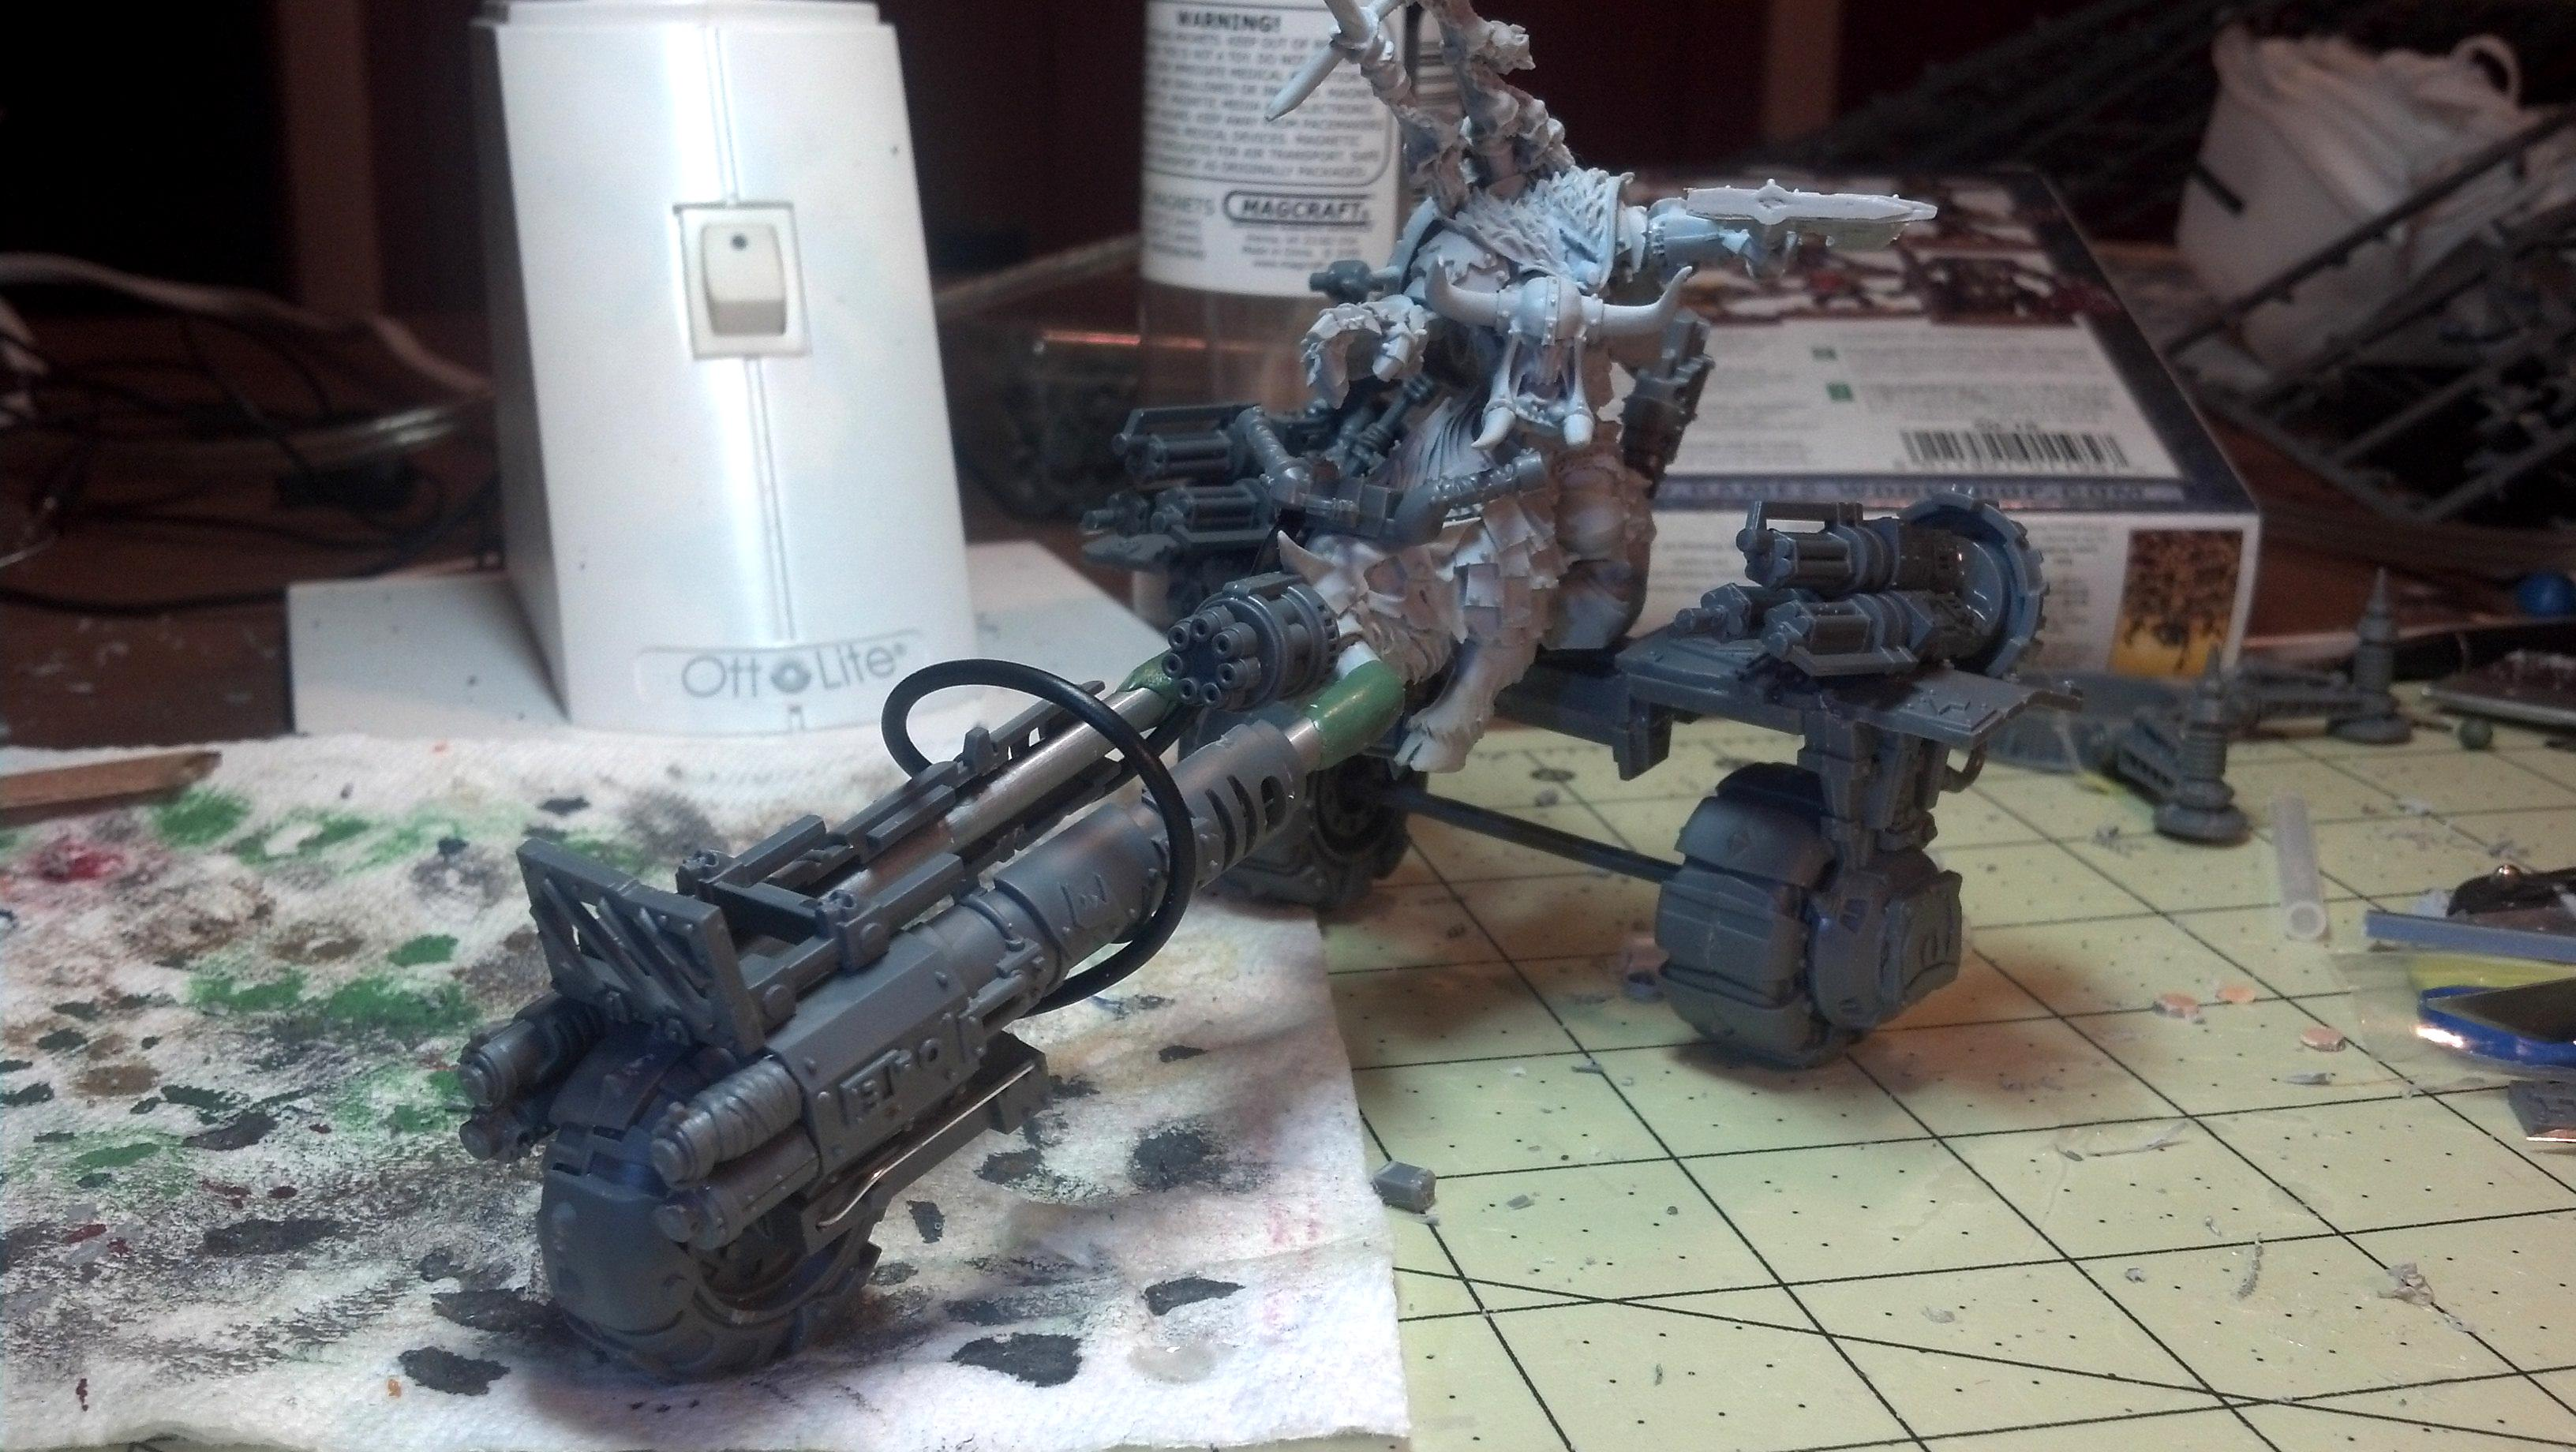 Bike, Boss, Conversion, Custom, Dakka Dakka, Gorbad, Green, Ironclaw, Orks, Scratch, Trike, War, Warbike, Warboss